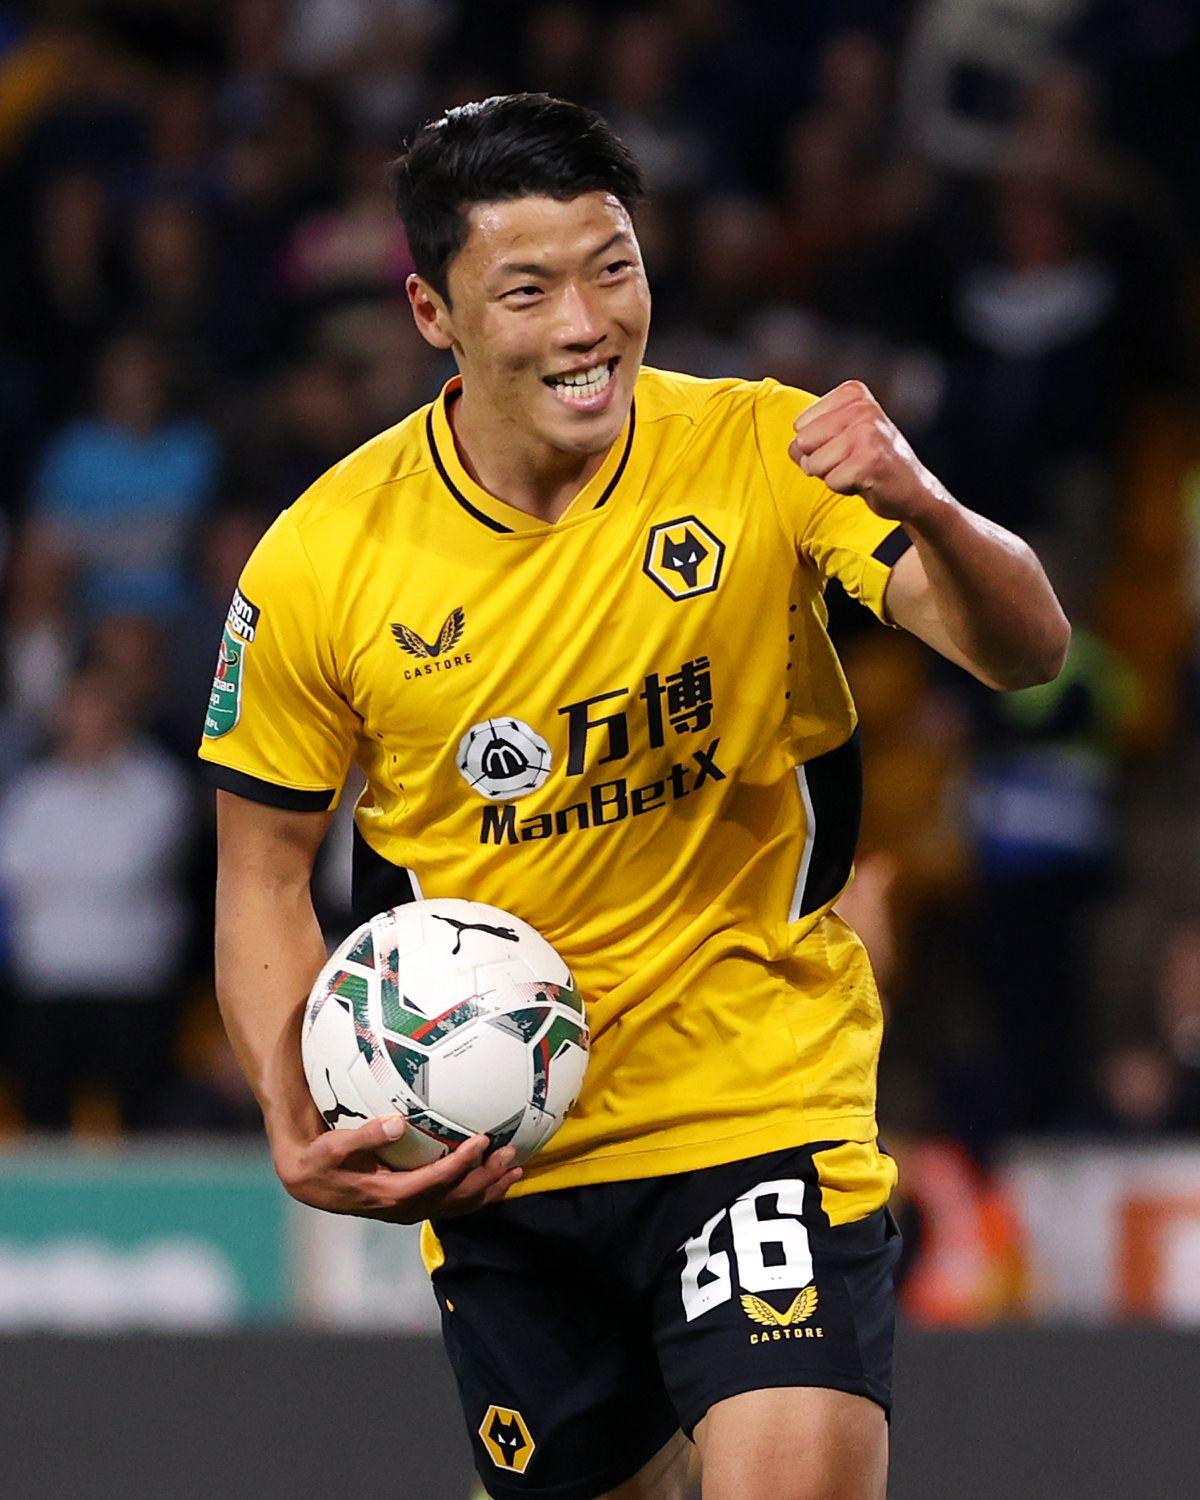 Hwang Hee-chan of Wolverhampton Wanderers celebrates (Photo by Jack Thomas - WWFC/Wolves via Getty Images).